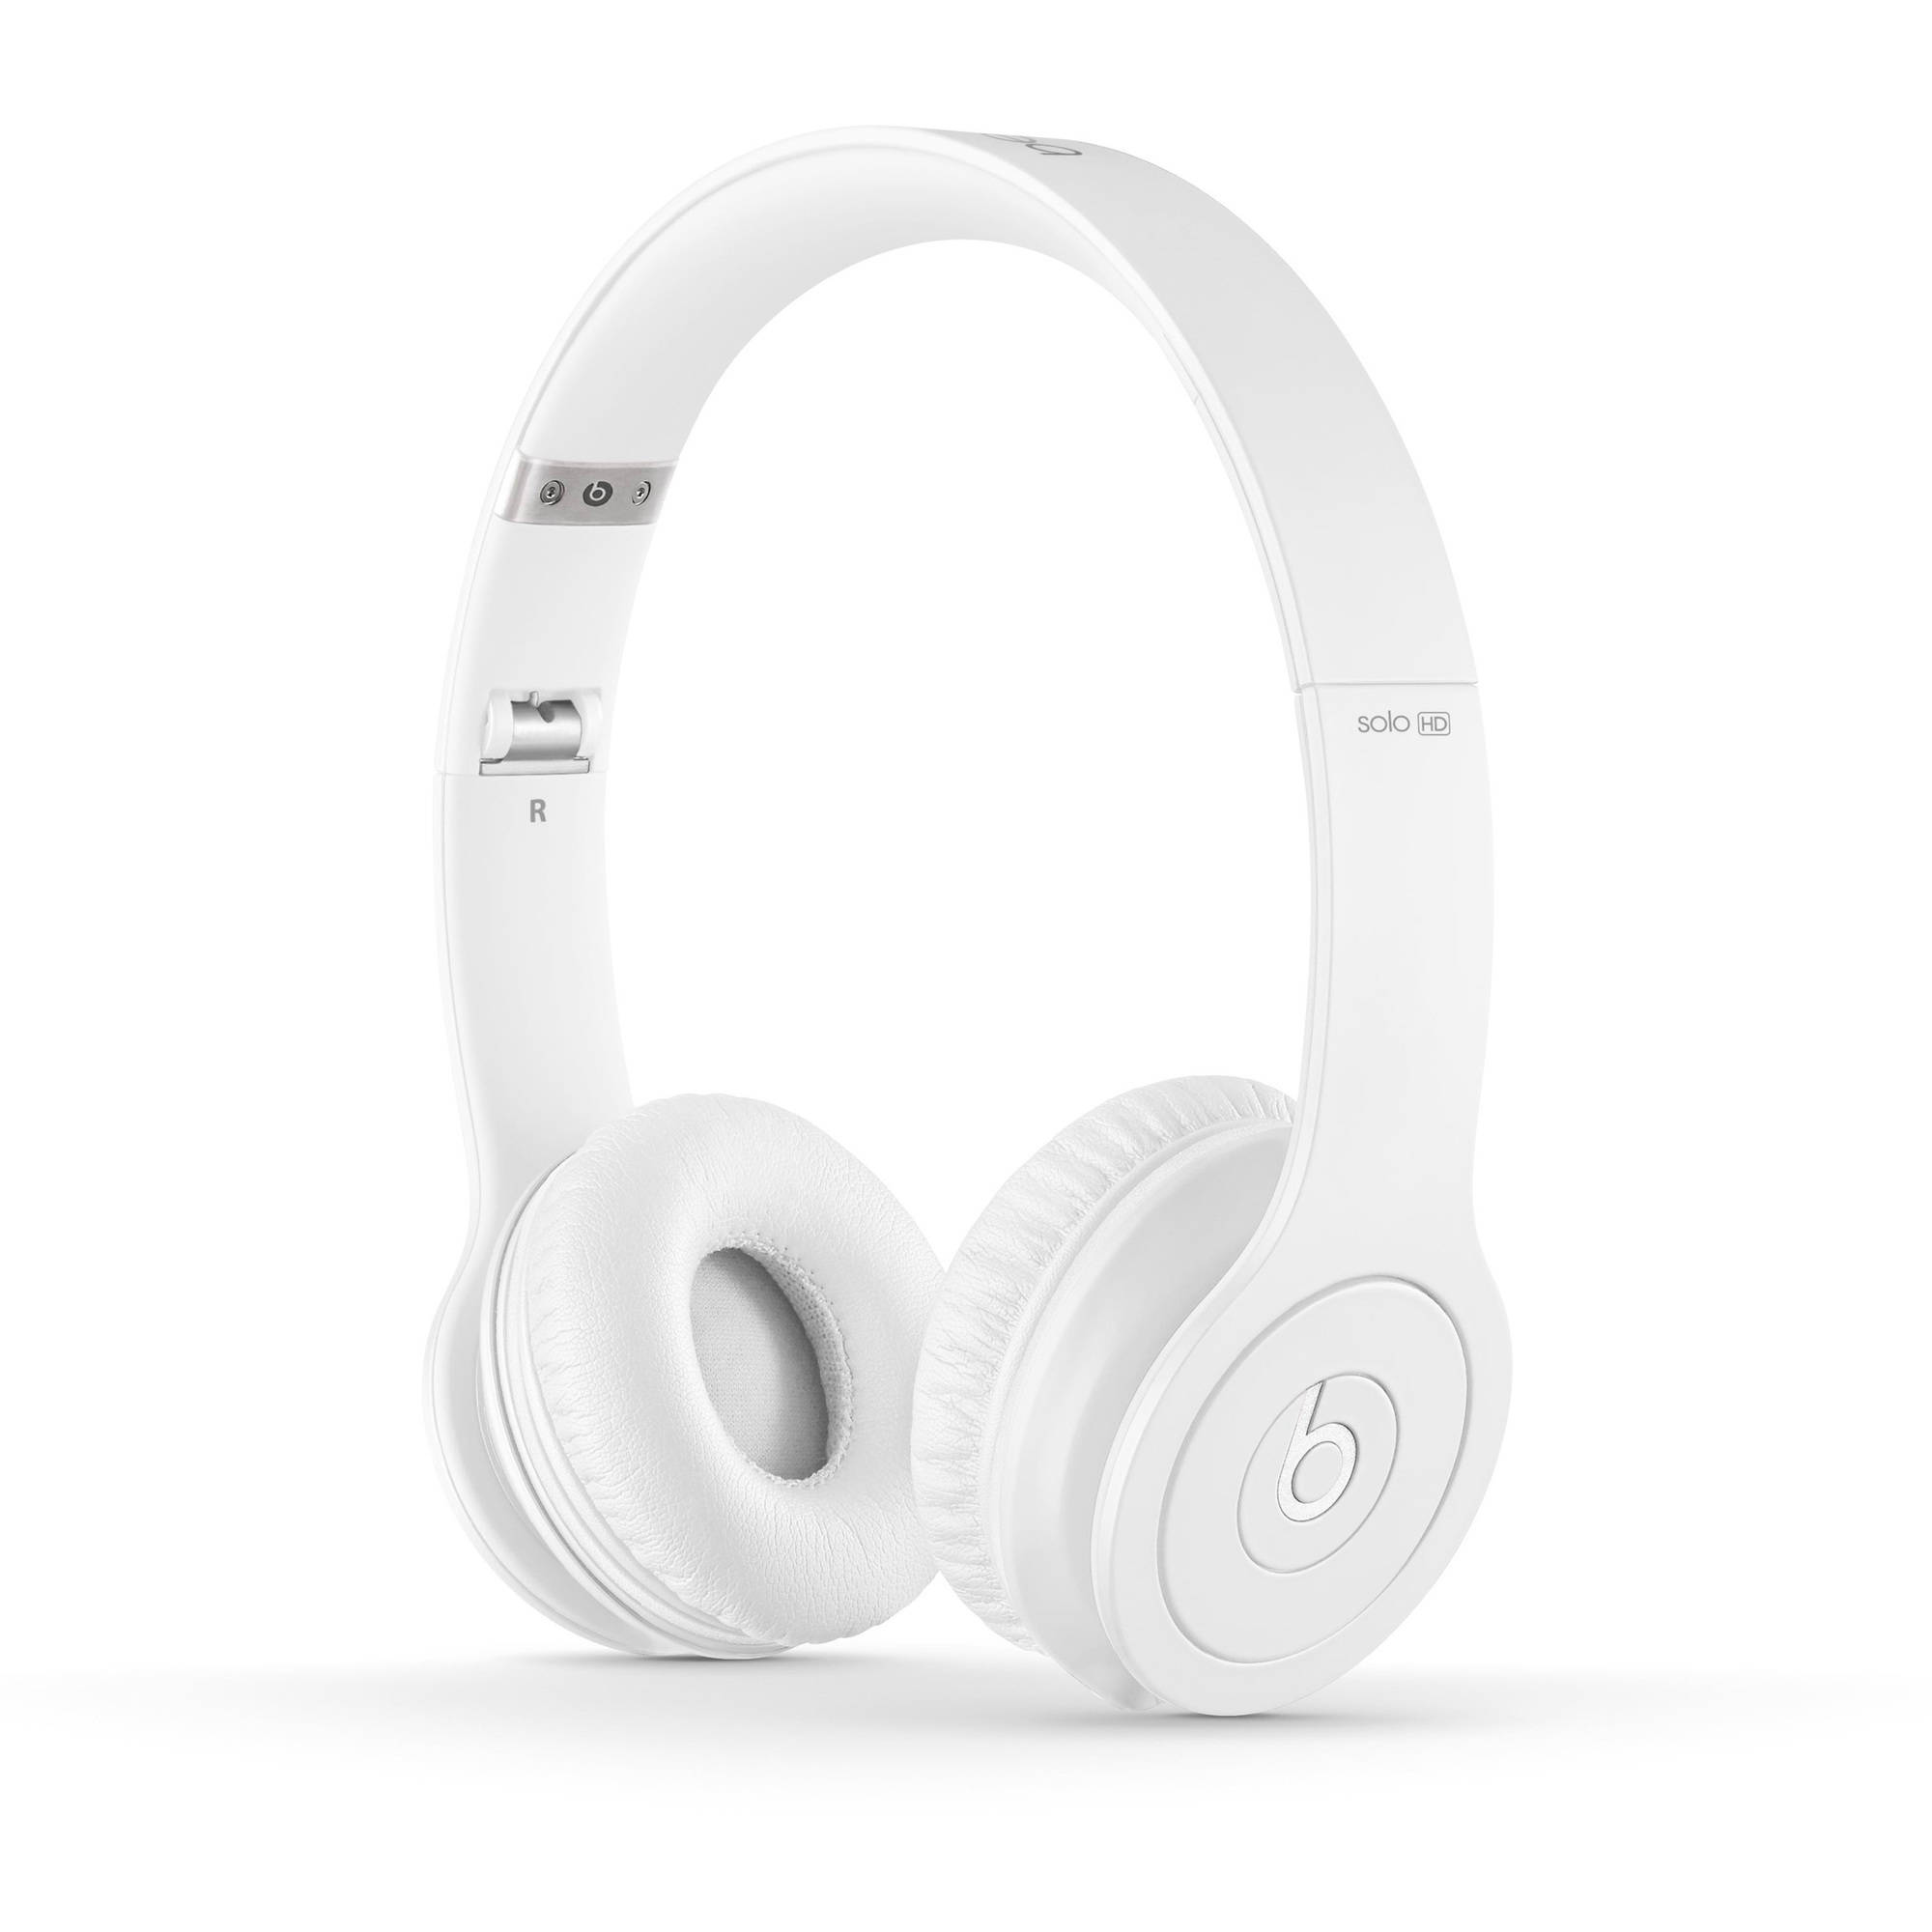 Refurbished Beats By Dr Dre Drenched Solo Over Ear Headphones